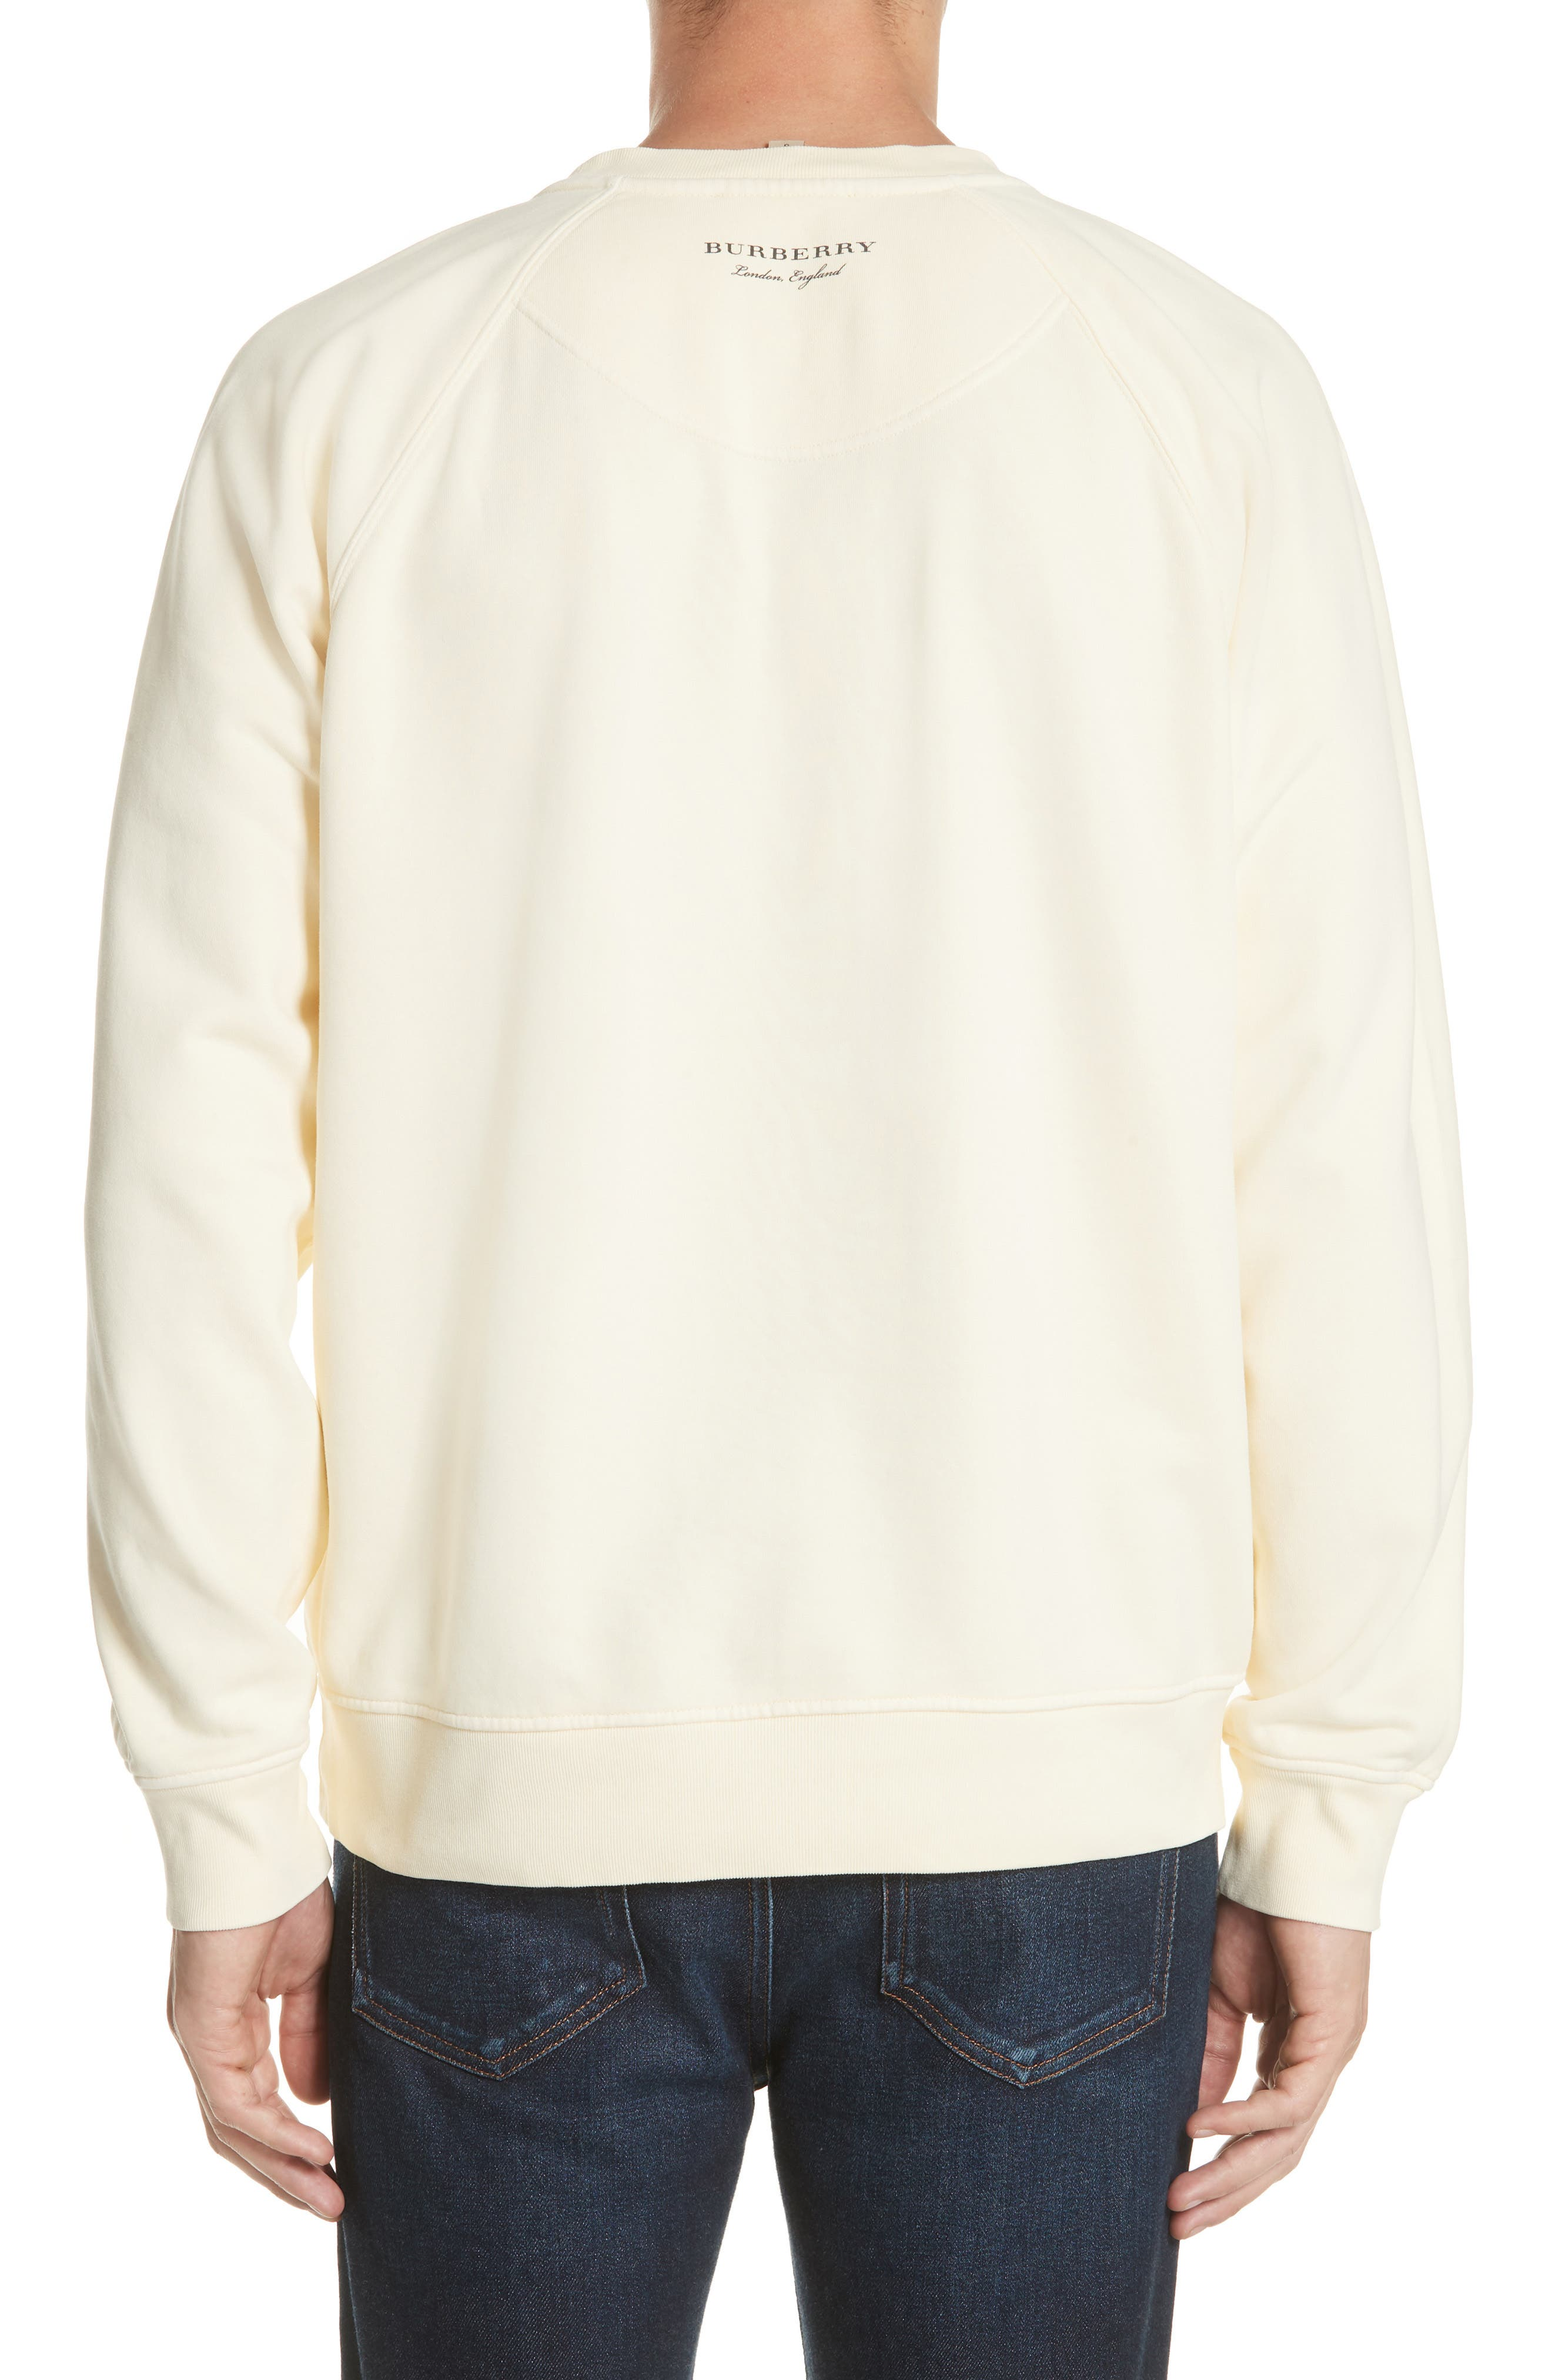 Earlford Graphic Sweatshirt,                             Alternate thumbnail 2, color,                             740